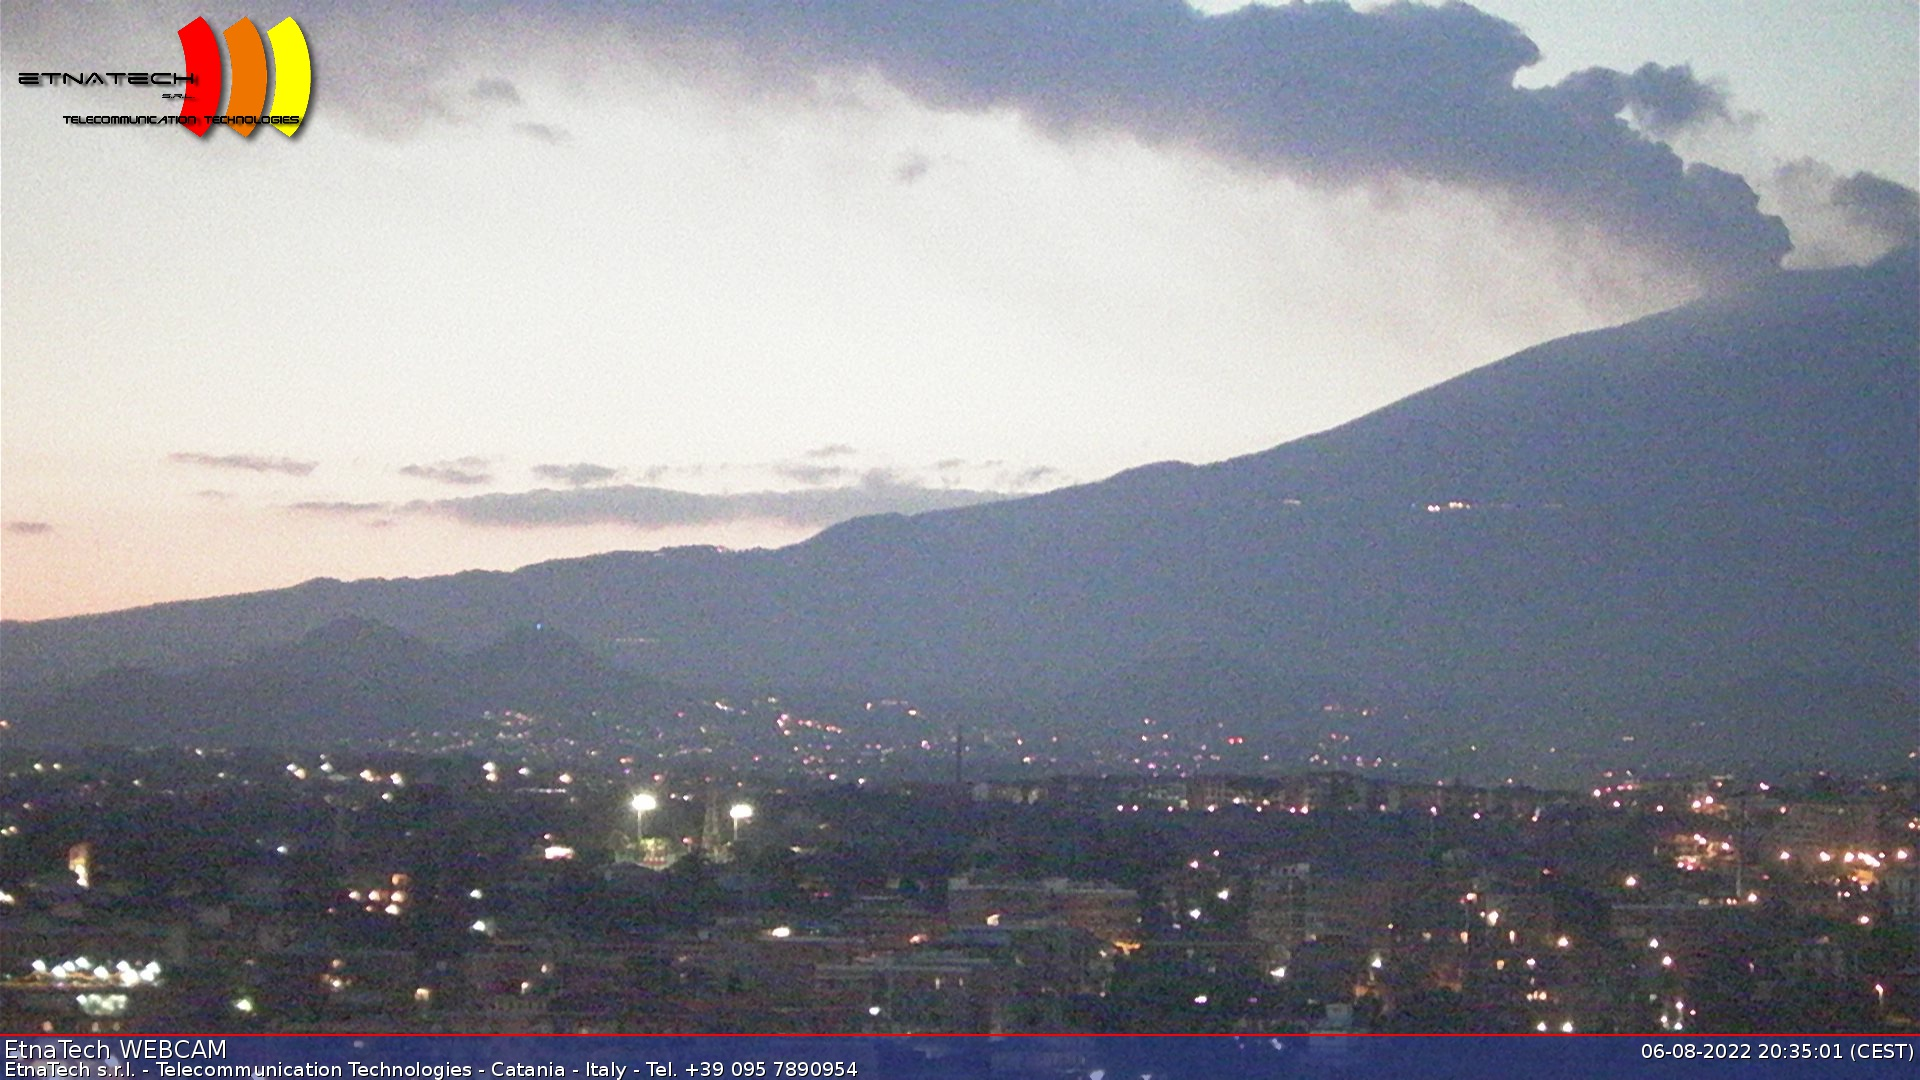 Catania webcam - Mount Etna webcam, Sicily, Catania